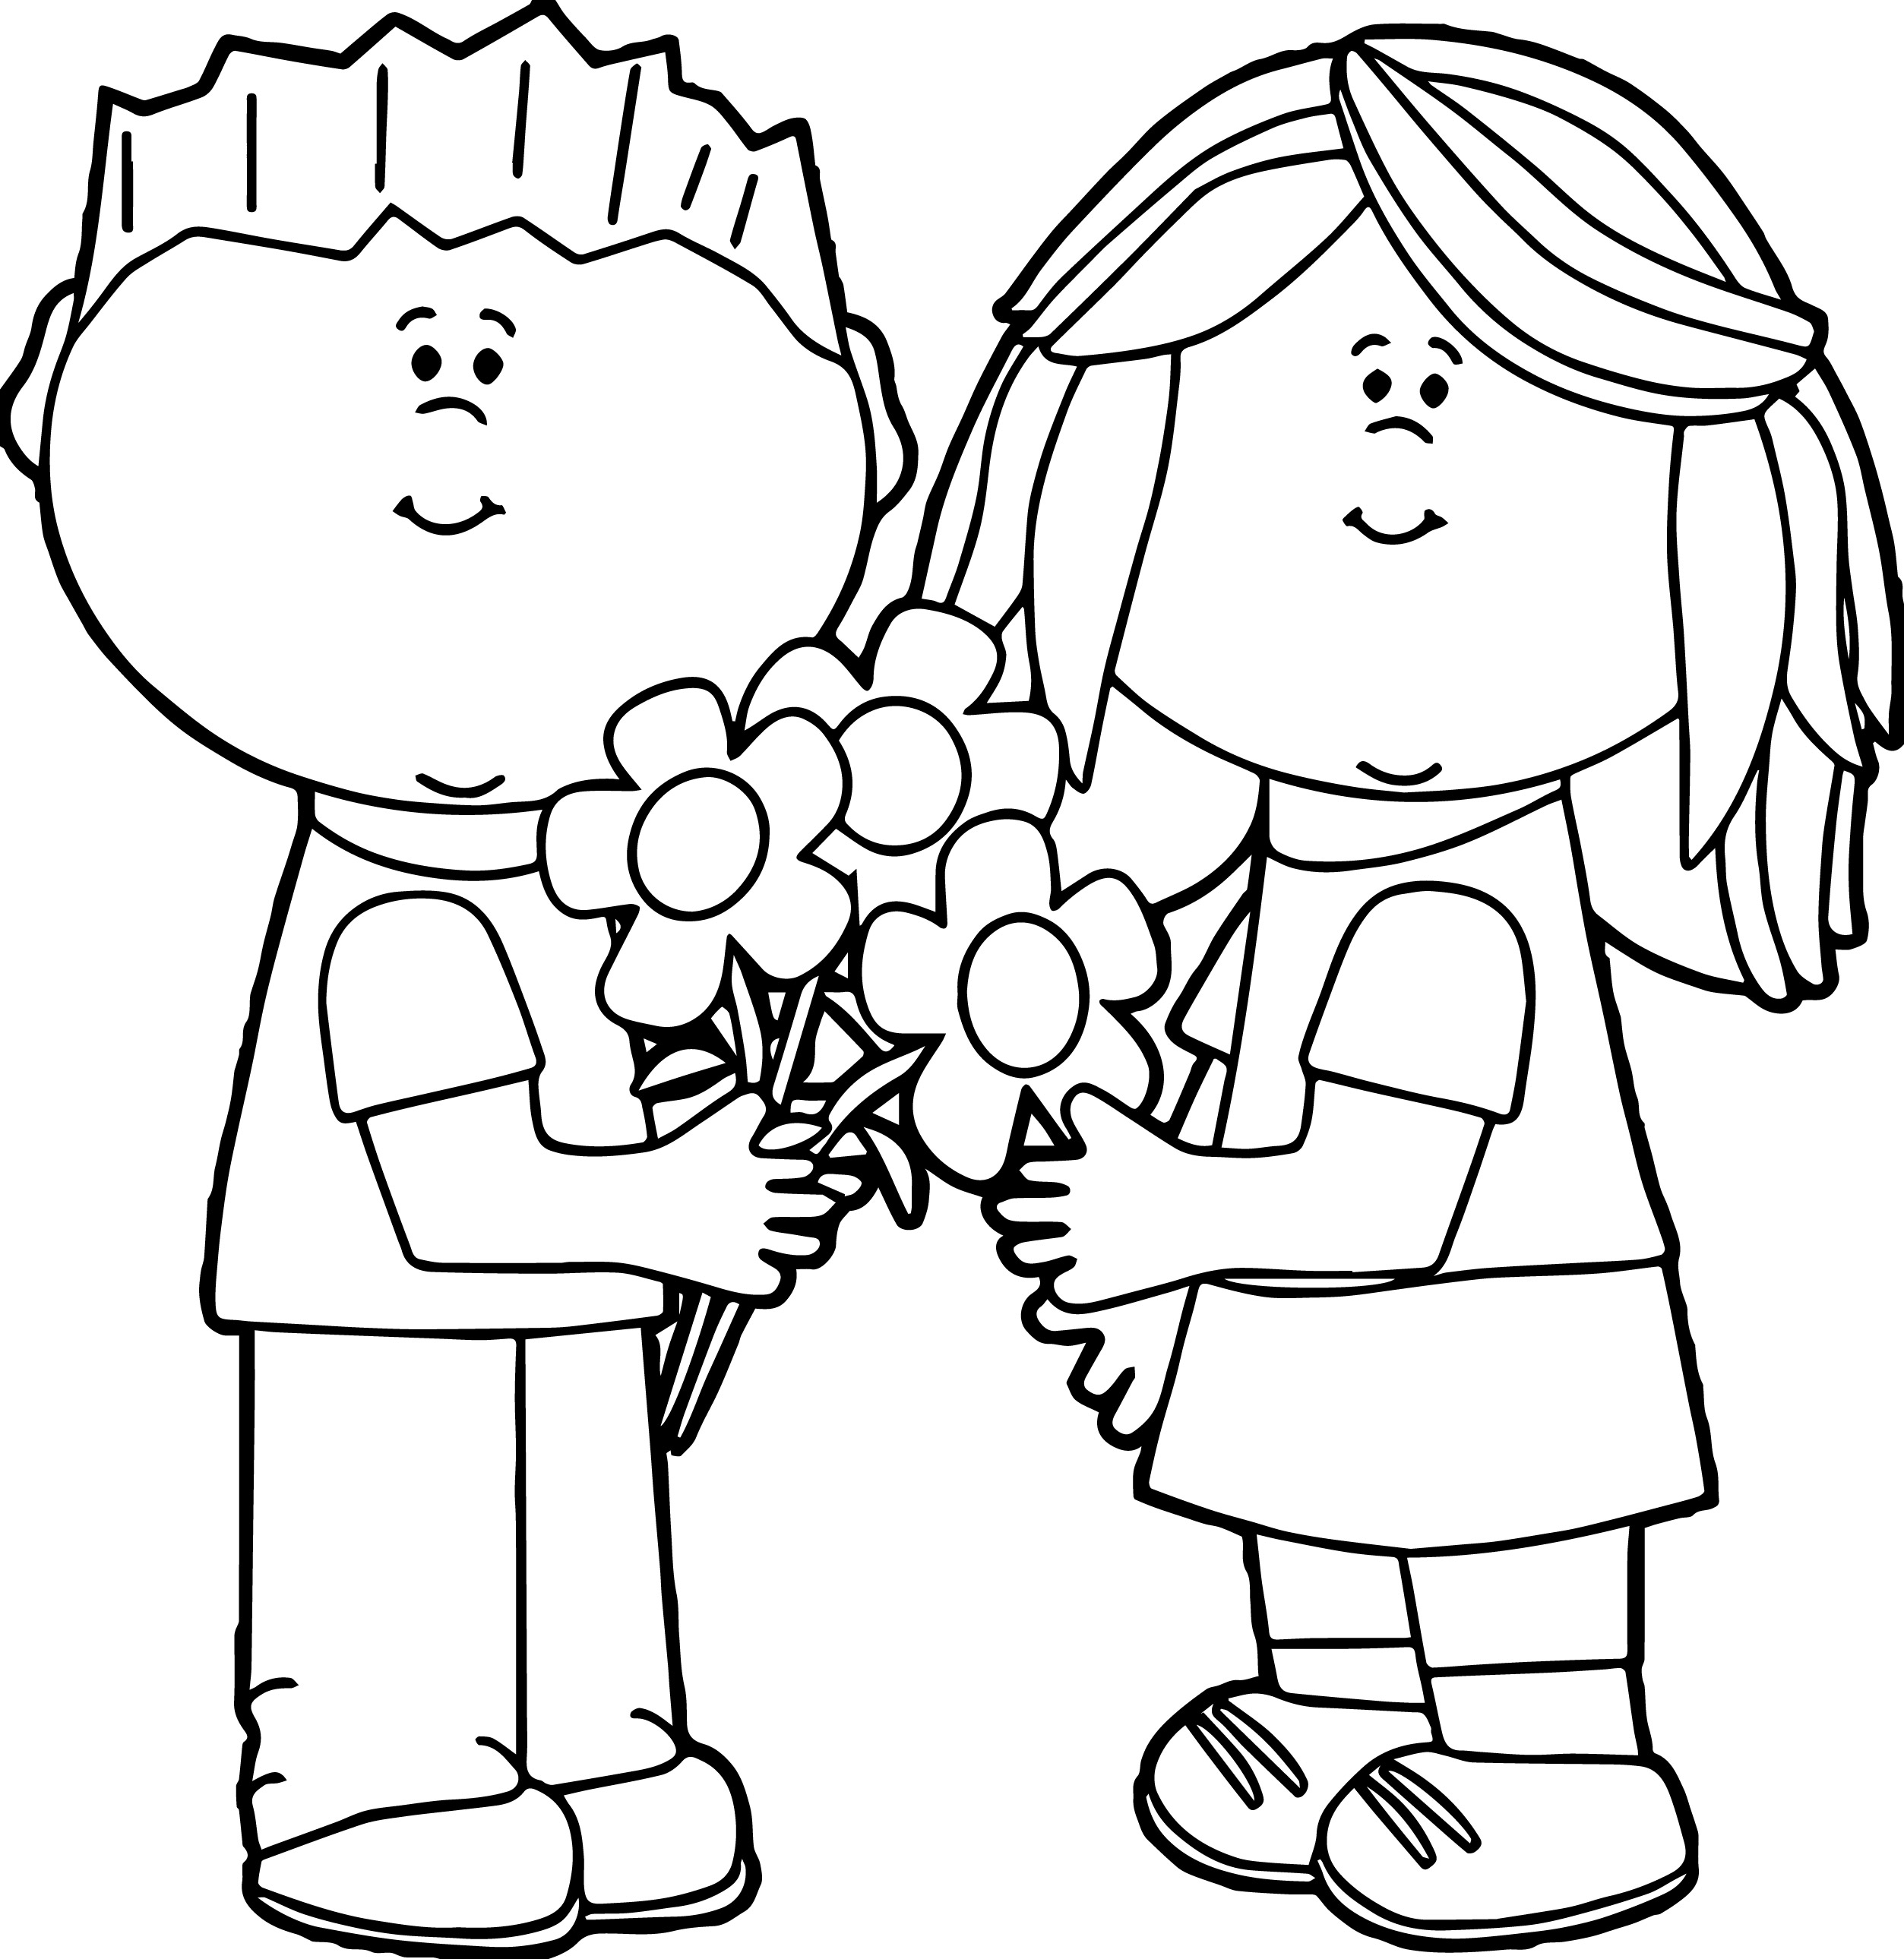 2506x2579 Kids Valentine Clipart Black And White